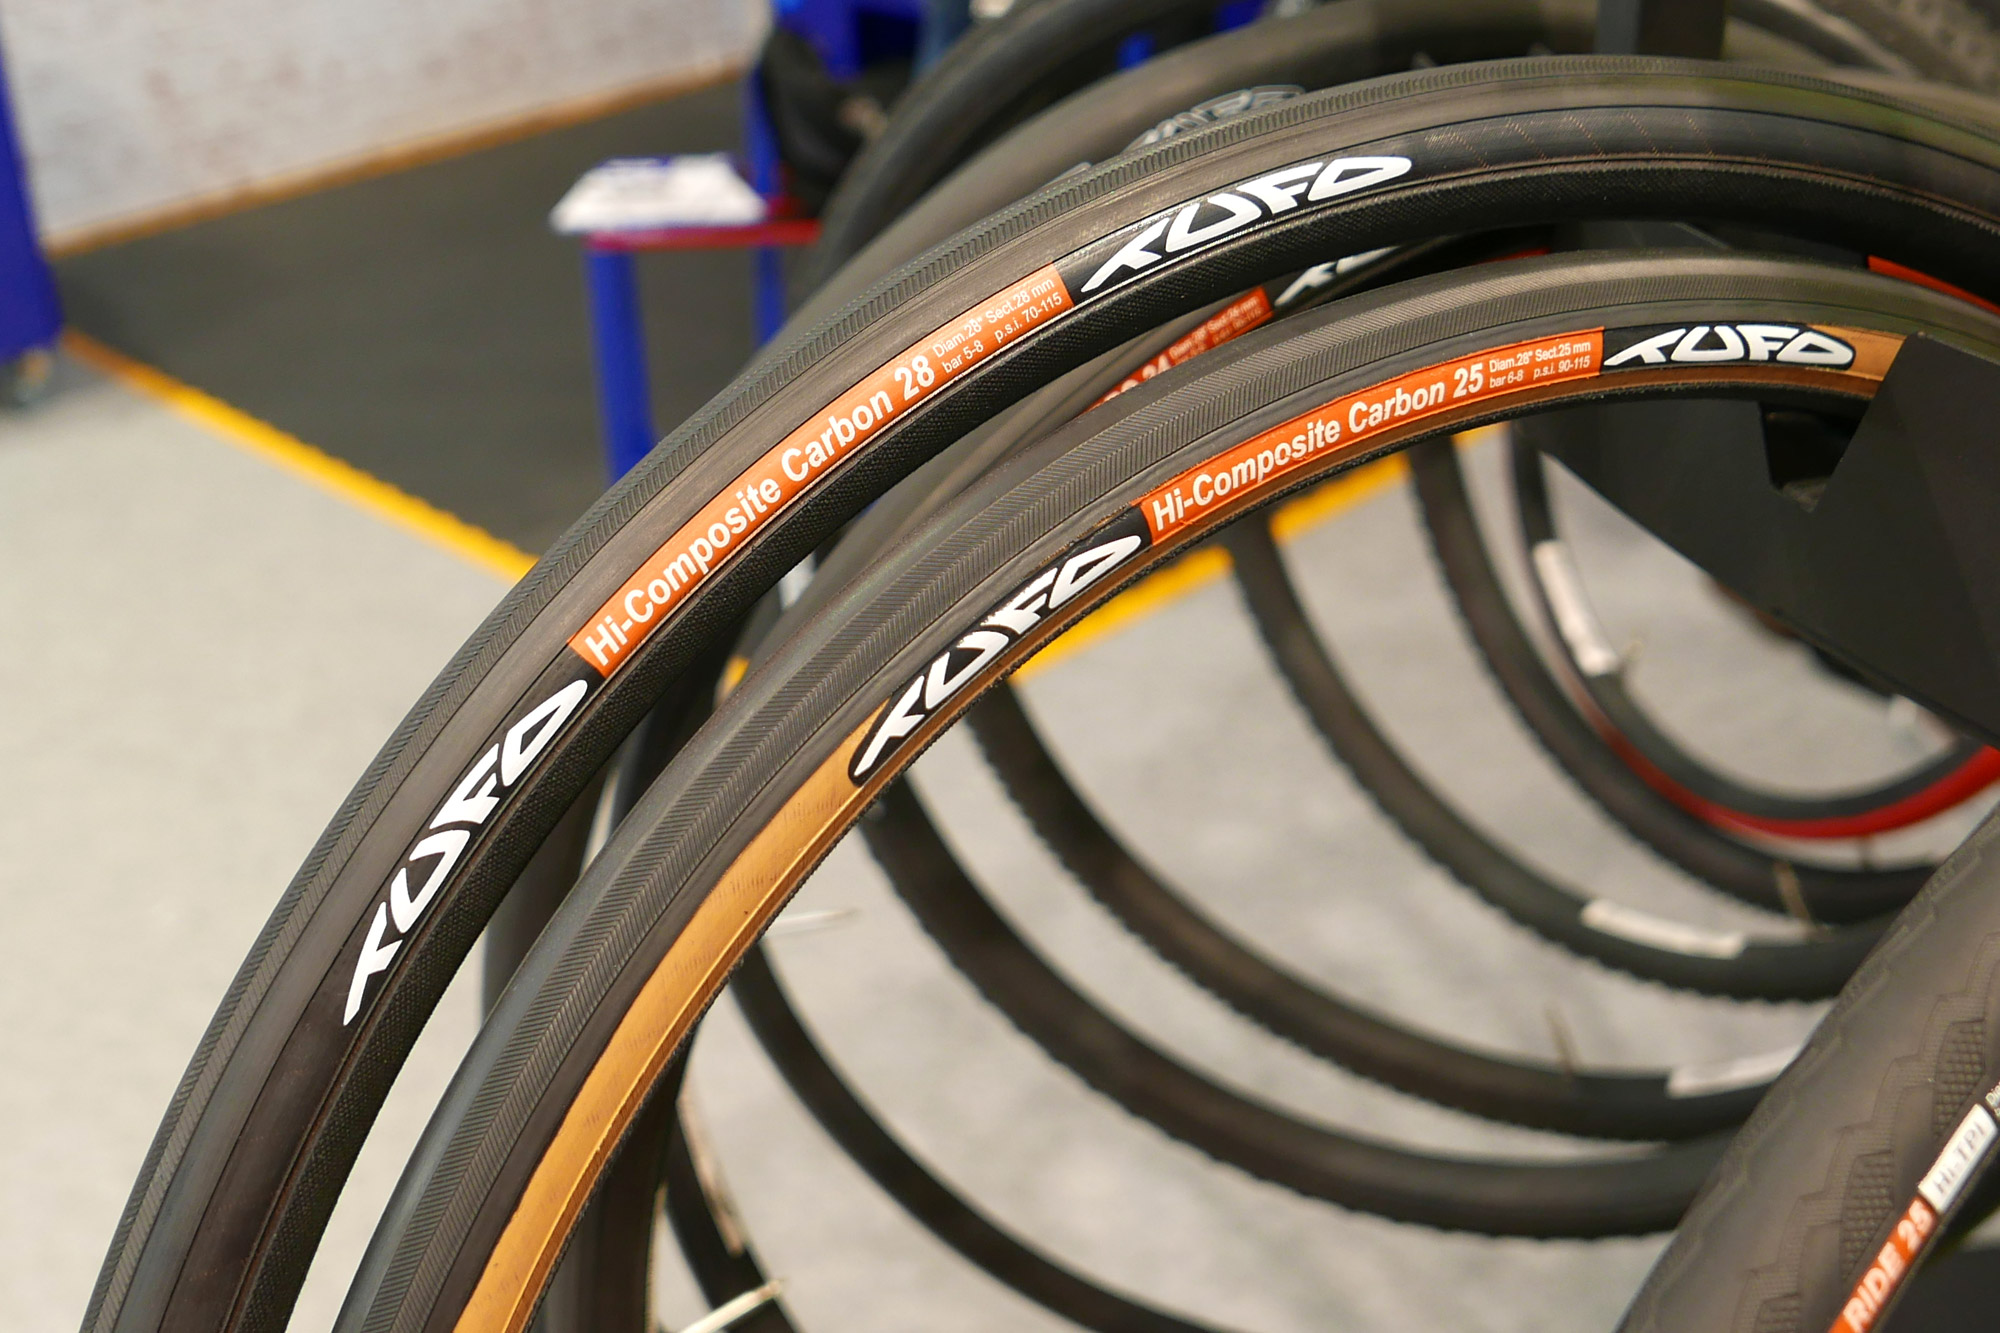 EB16: Tufo Comtura expands road tire offering with more ...